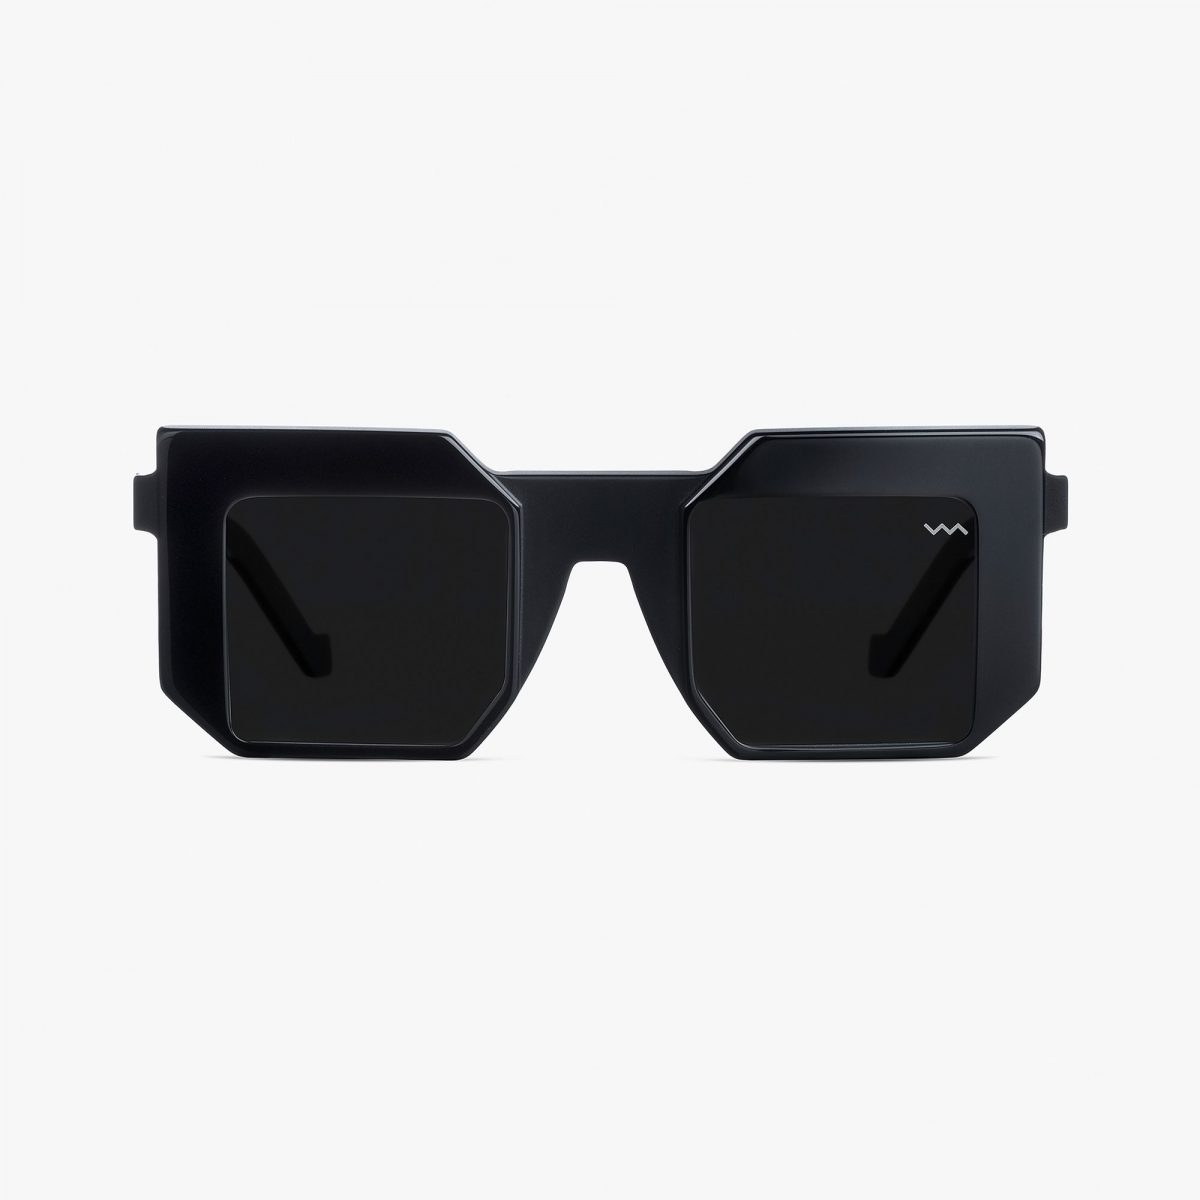 VAVA EYEWEAR ONLINE SHOP BL0010 SUNGLASS BLACK